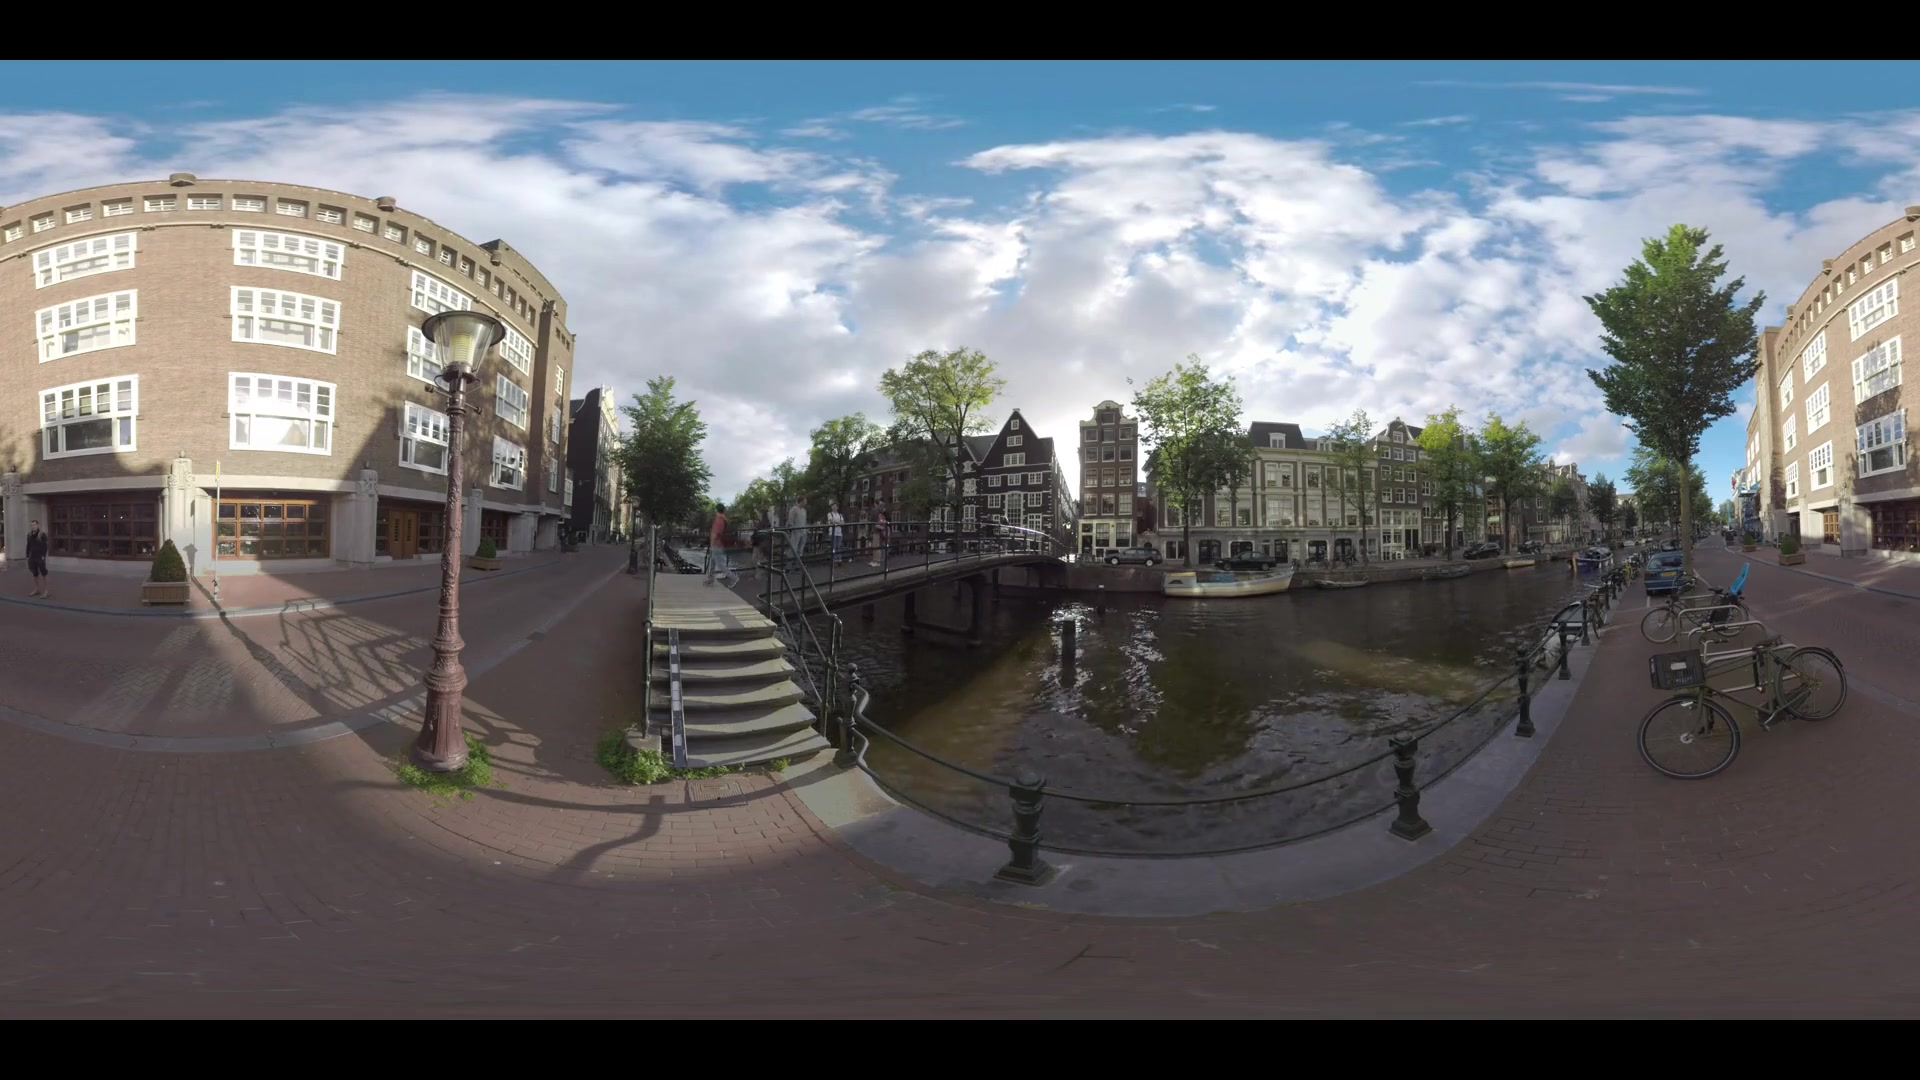 AMSTERDAM, NETHERLANDS - AUGUST 09, 2016: 360 VR video. Quiet city street with traditional Dutch houses and people walking across the footbridge over the canal where touristic boat sailing